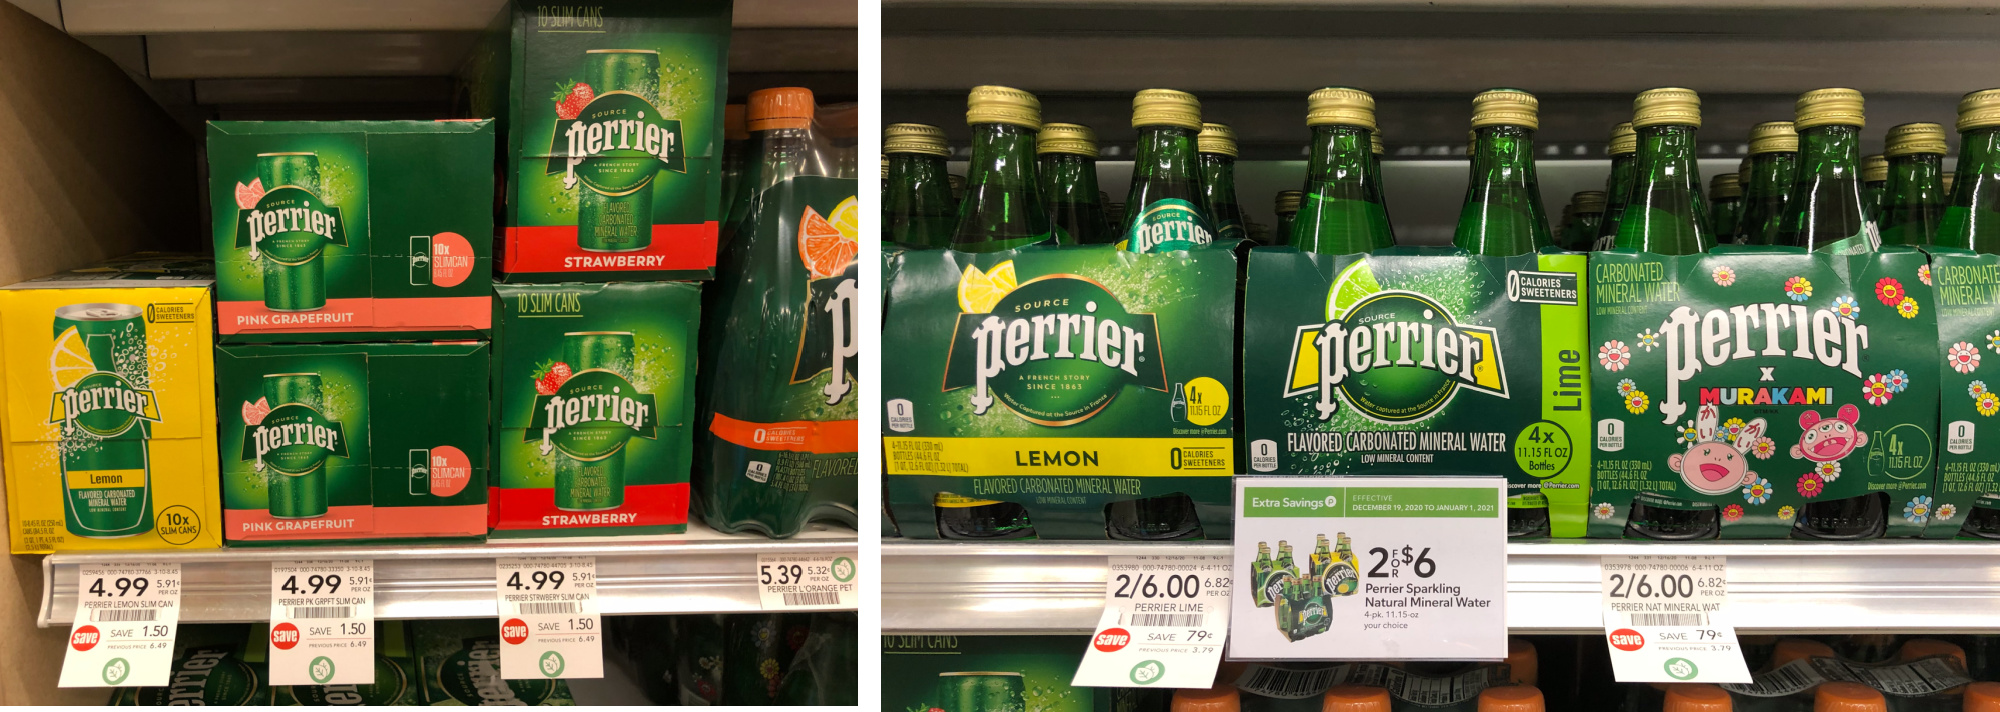 PERRIER® Sparkling Natural Mineral Water Slim Cans 10-Pack Just $3.49 At Publix on I Heart Publix 1